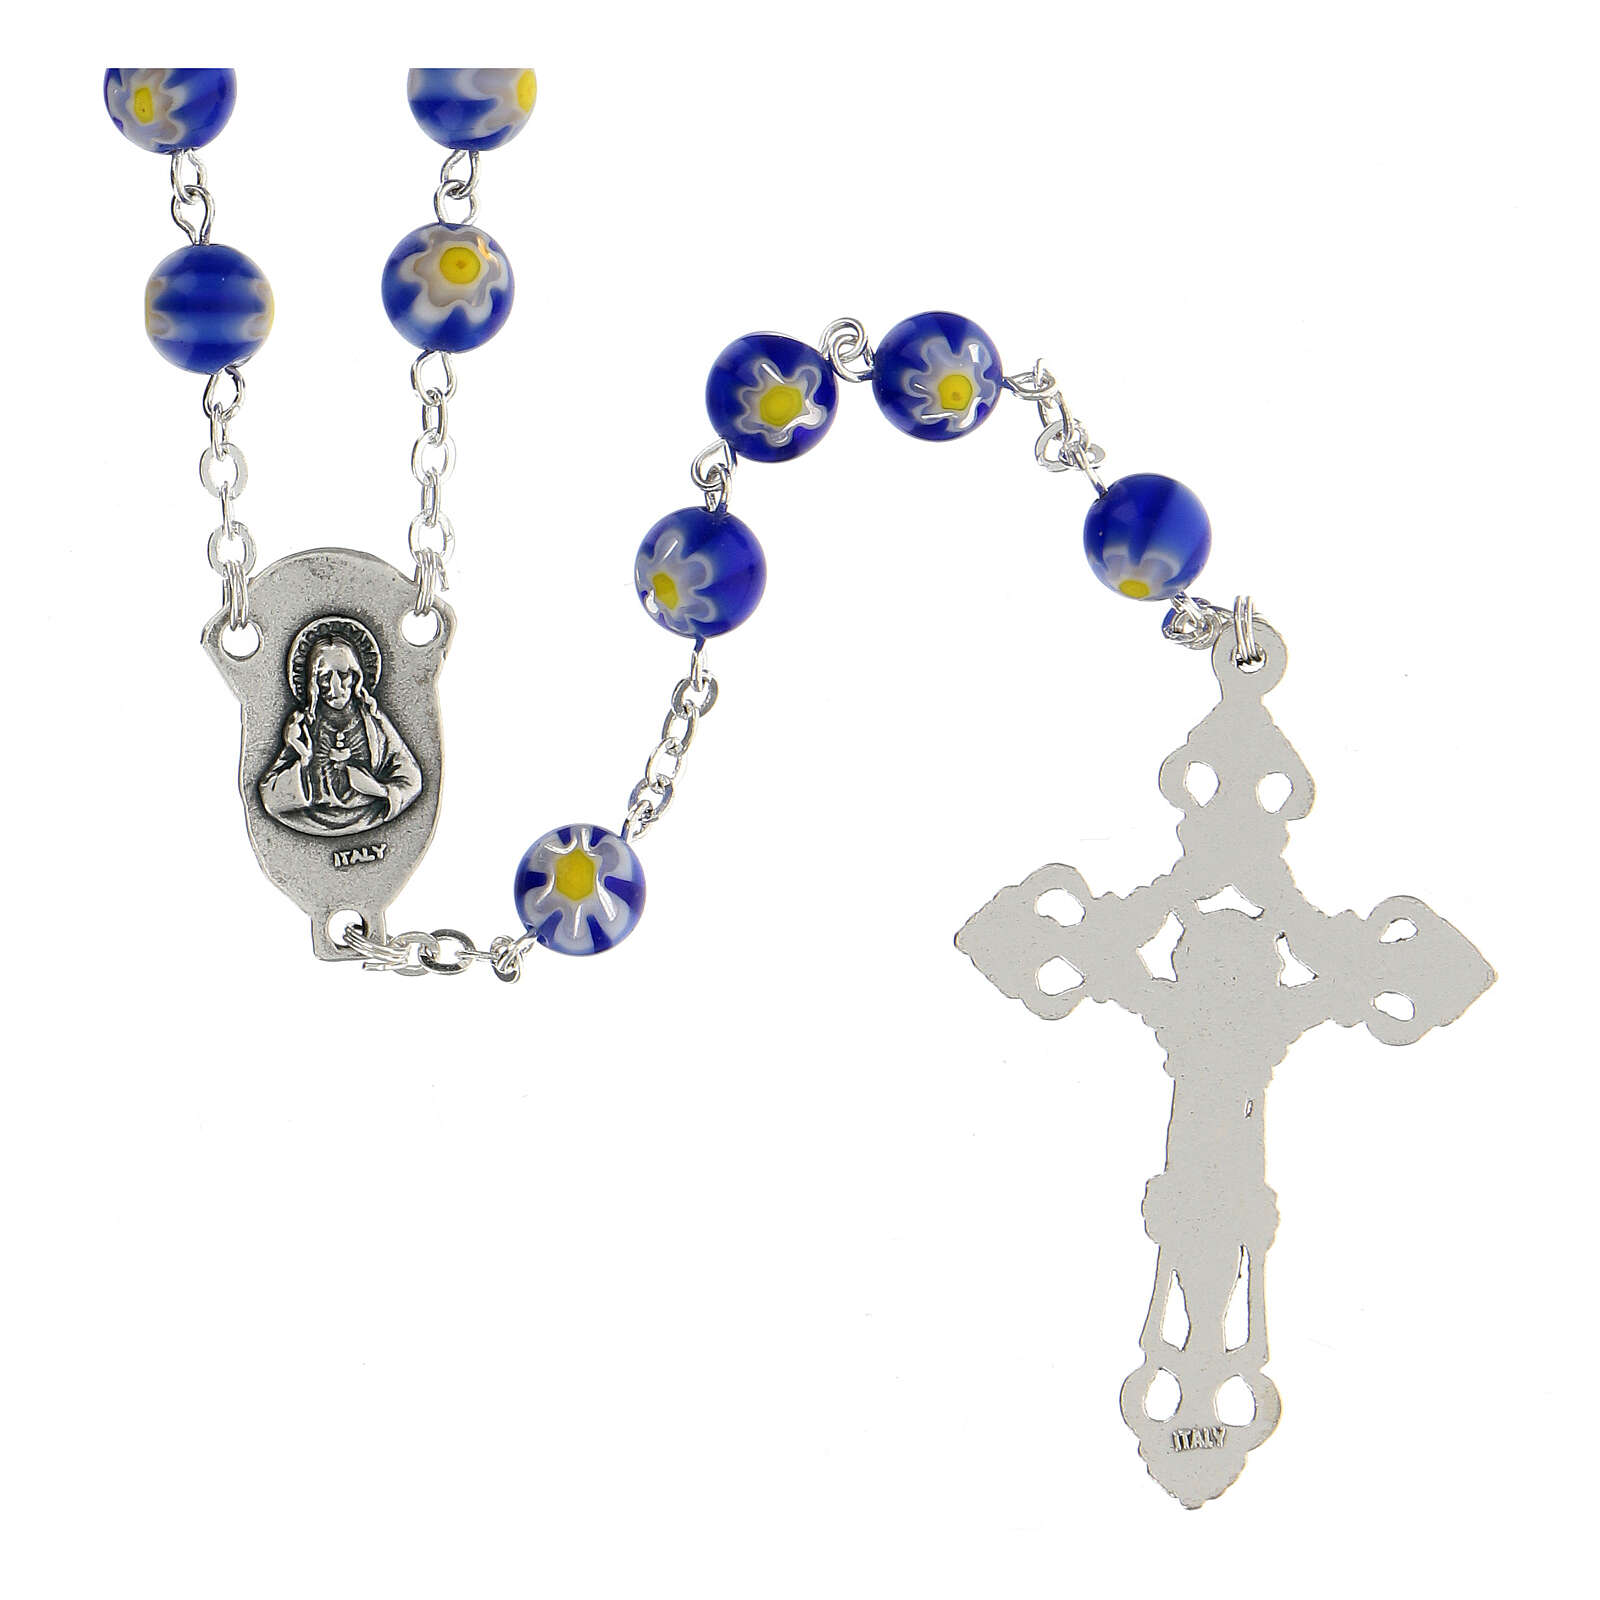 Blue Murano glass style rosary beads, 8mm 4